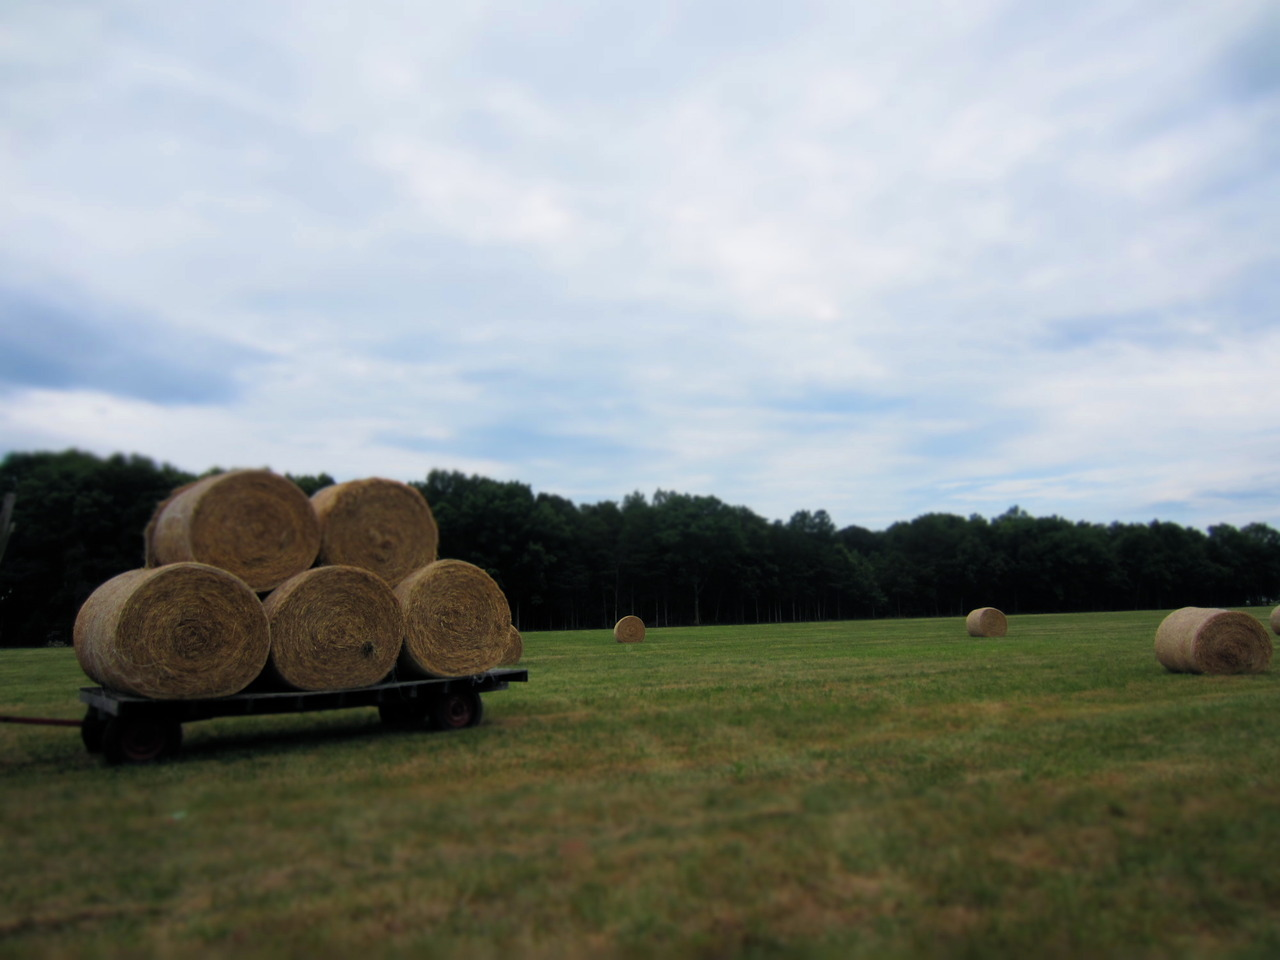 let's go for a roll in the hay